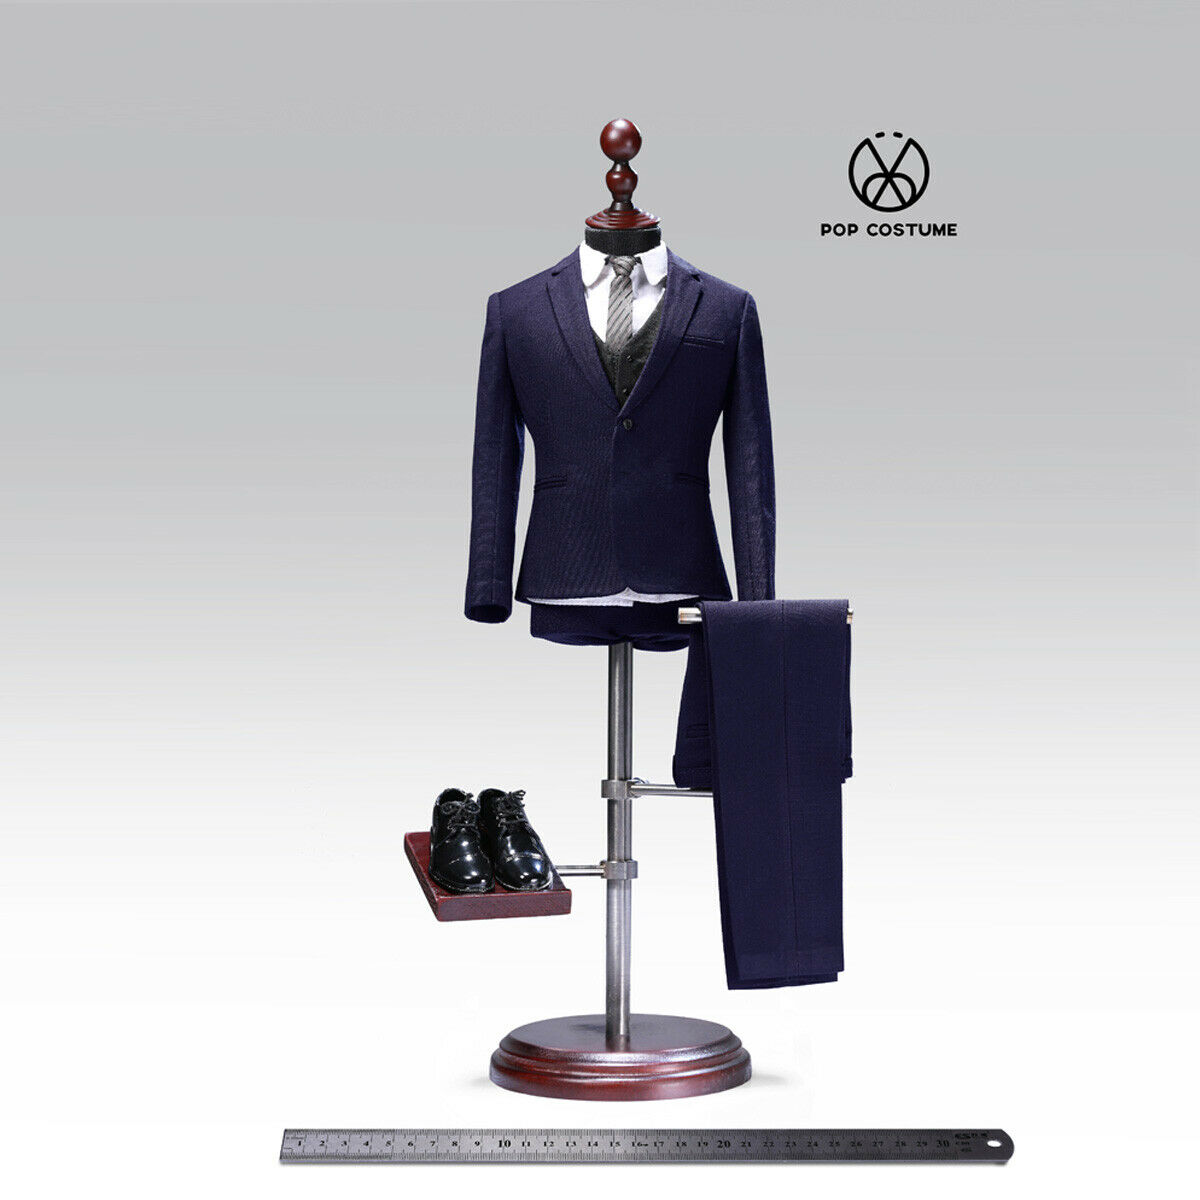 POPTOYS POP-X27-B 1 6th Male Clothes Suit For 12 12 12  Action Figure Hot Toys bluee 5f21b1